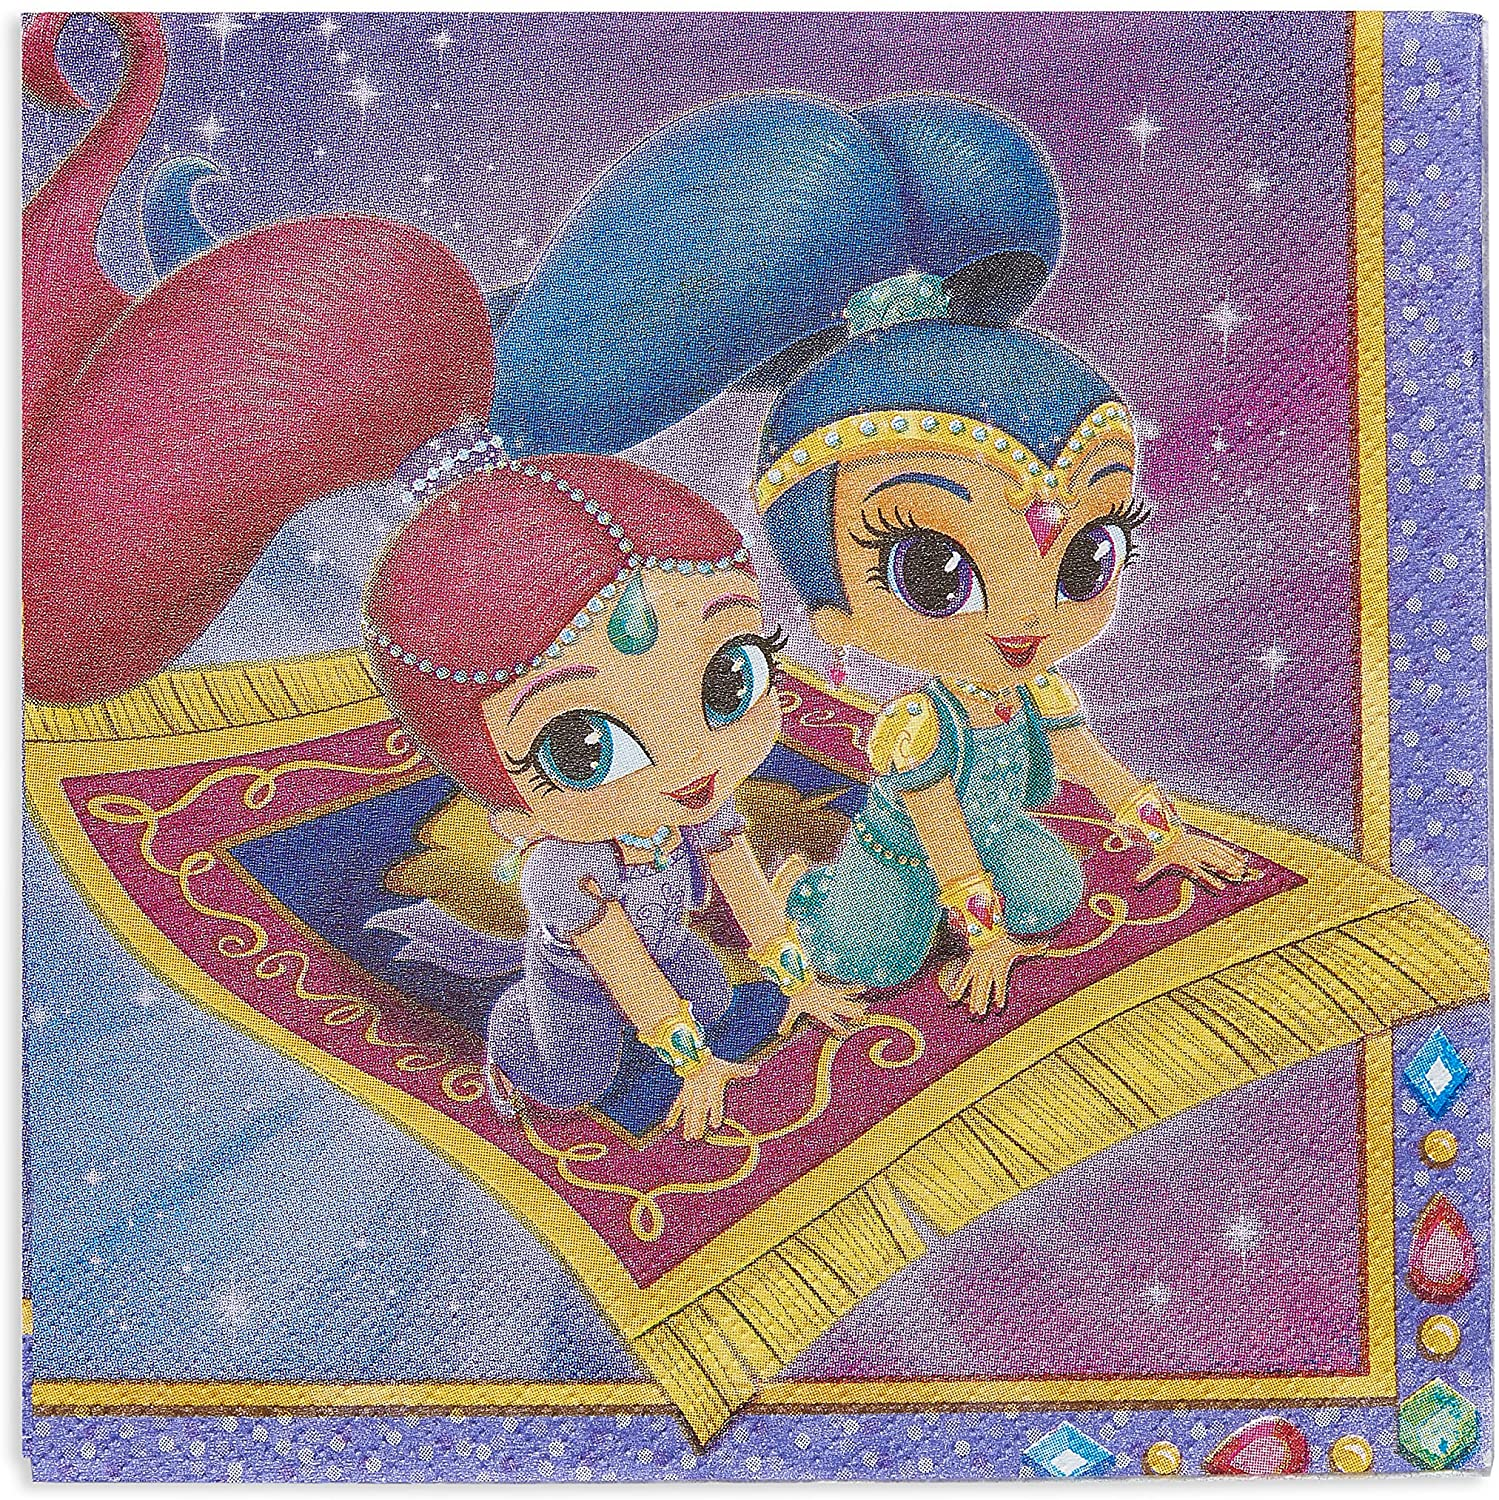 American Greetings Shimmer and Shine Party Supplies, Paper Lunch Napkins (16-Count)